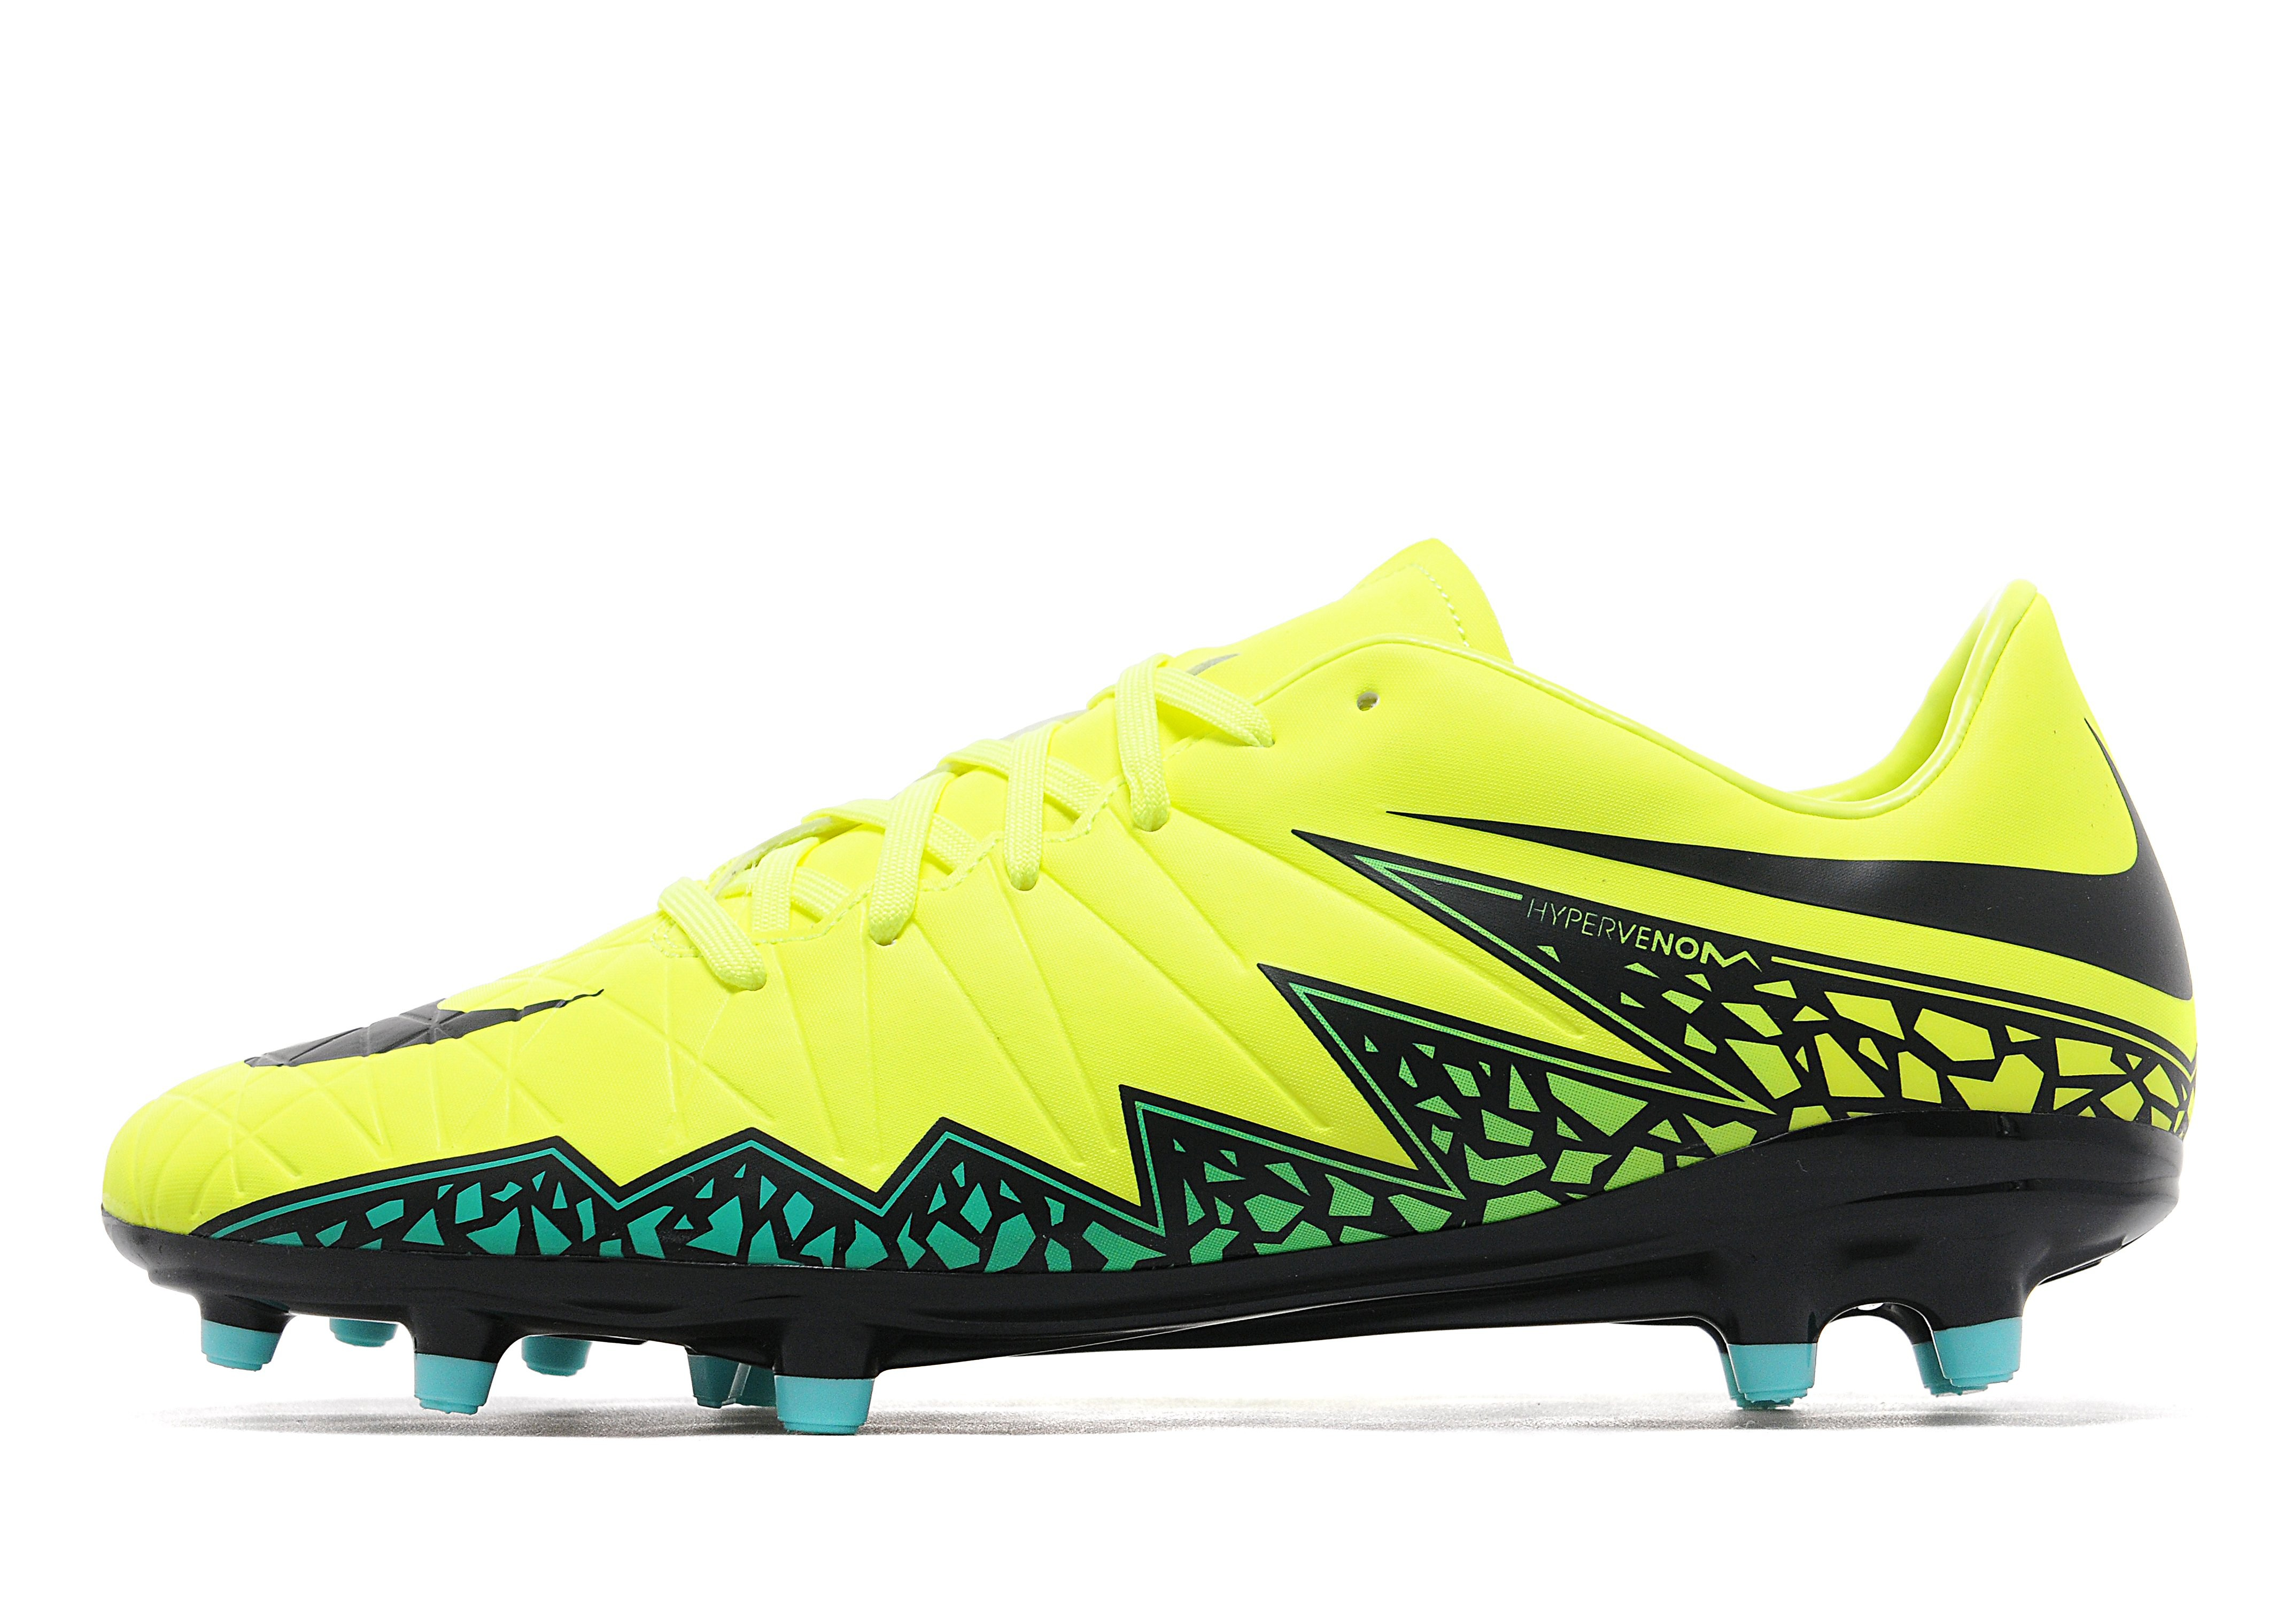 Nike Spark Brilliance Hypervenom Phelon II Firm Ground